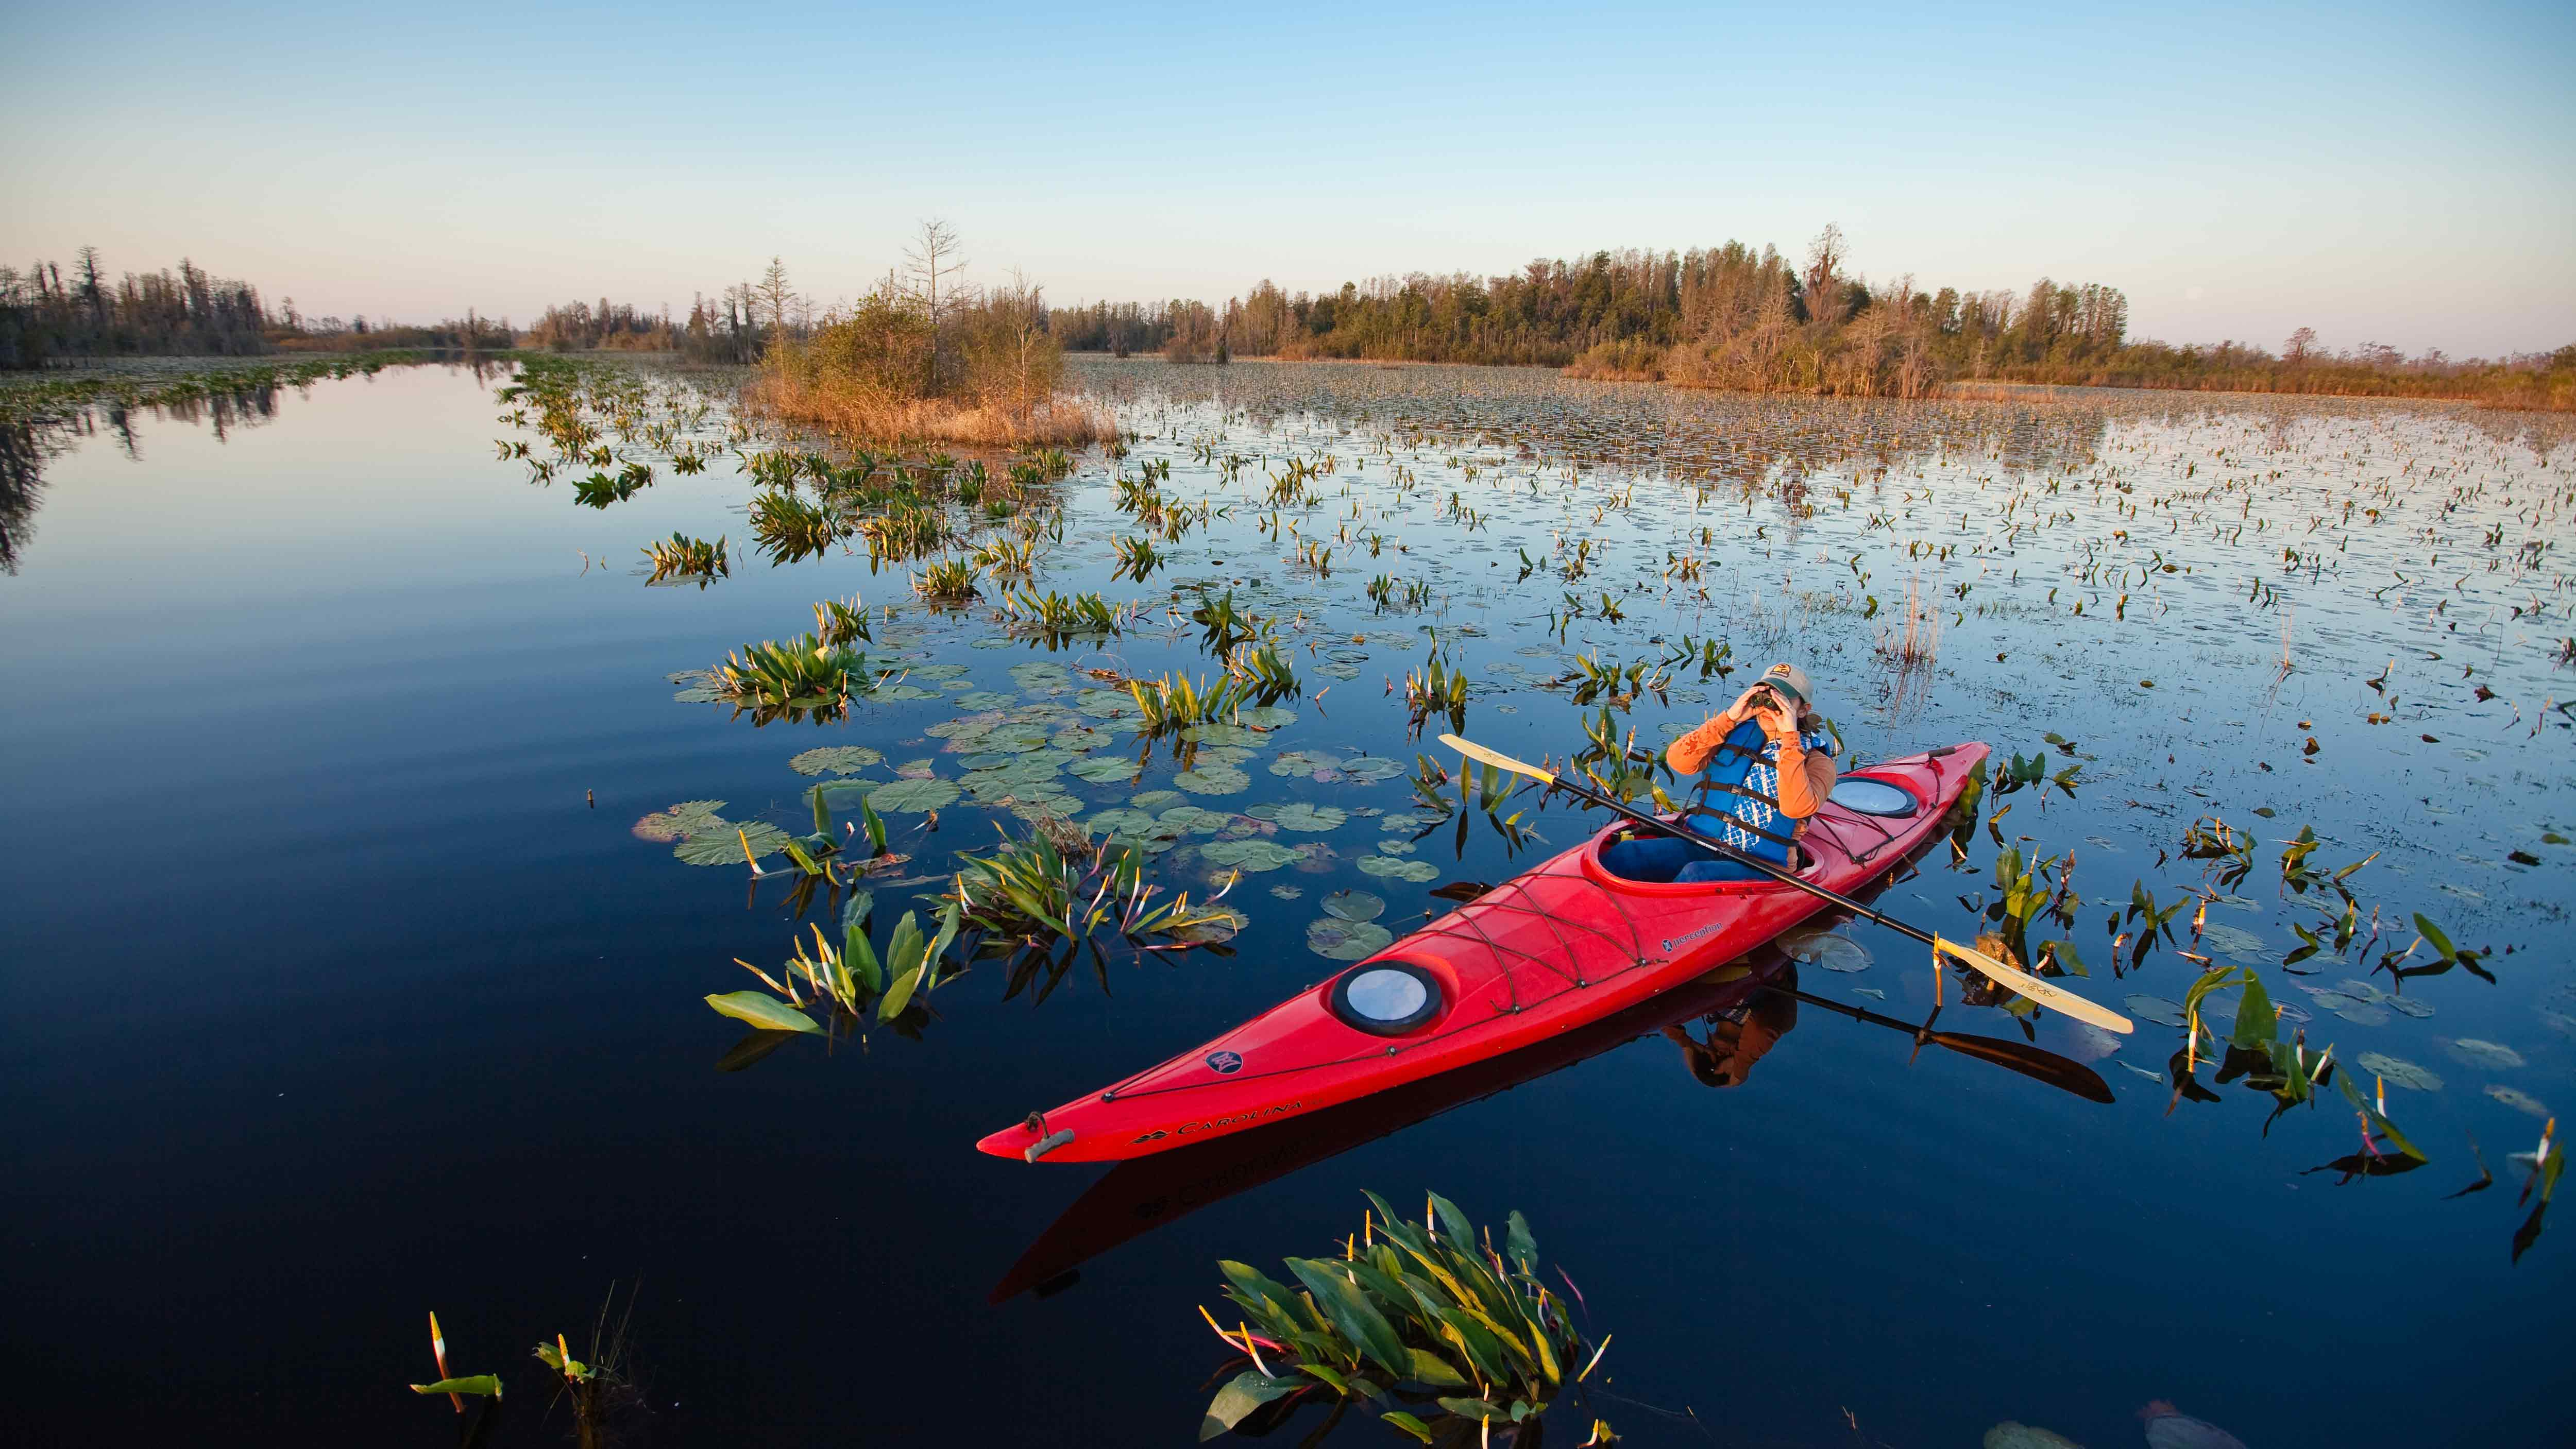 Kayaking in the Okefenokee Swamp